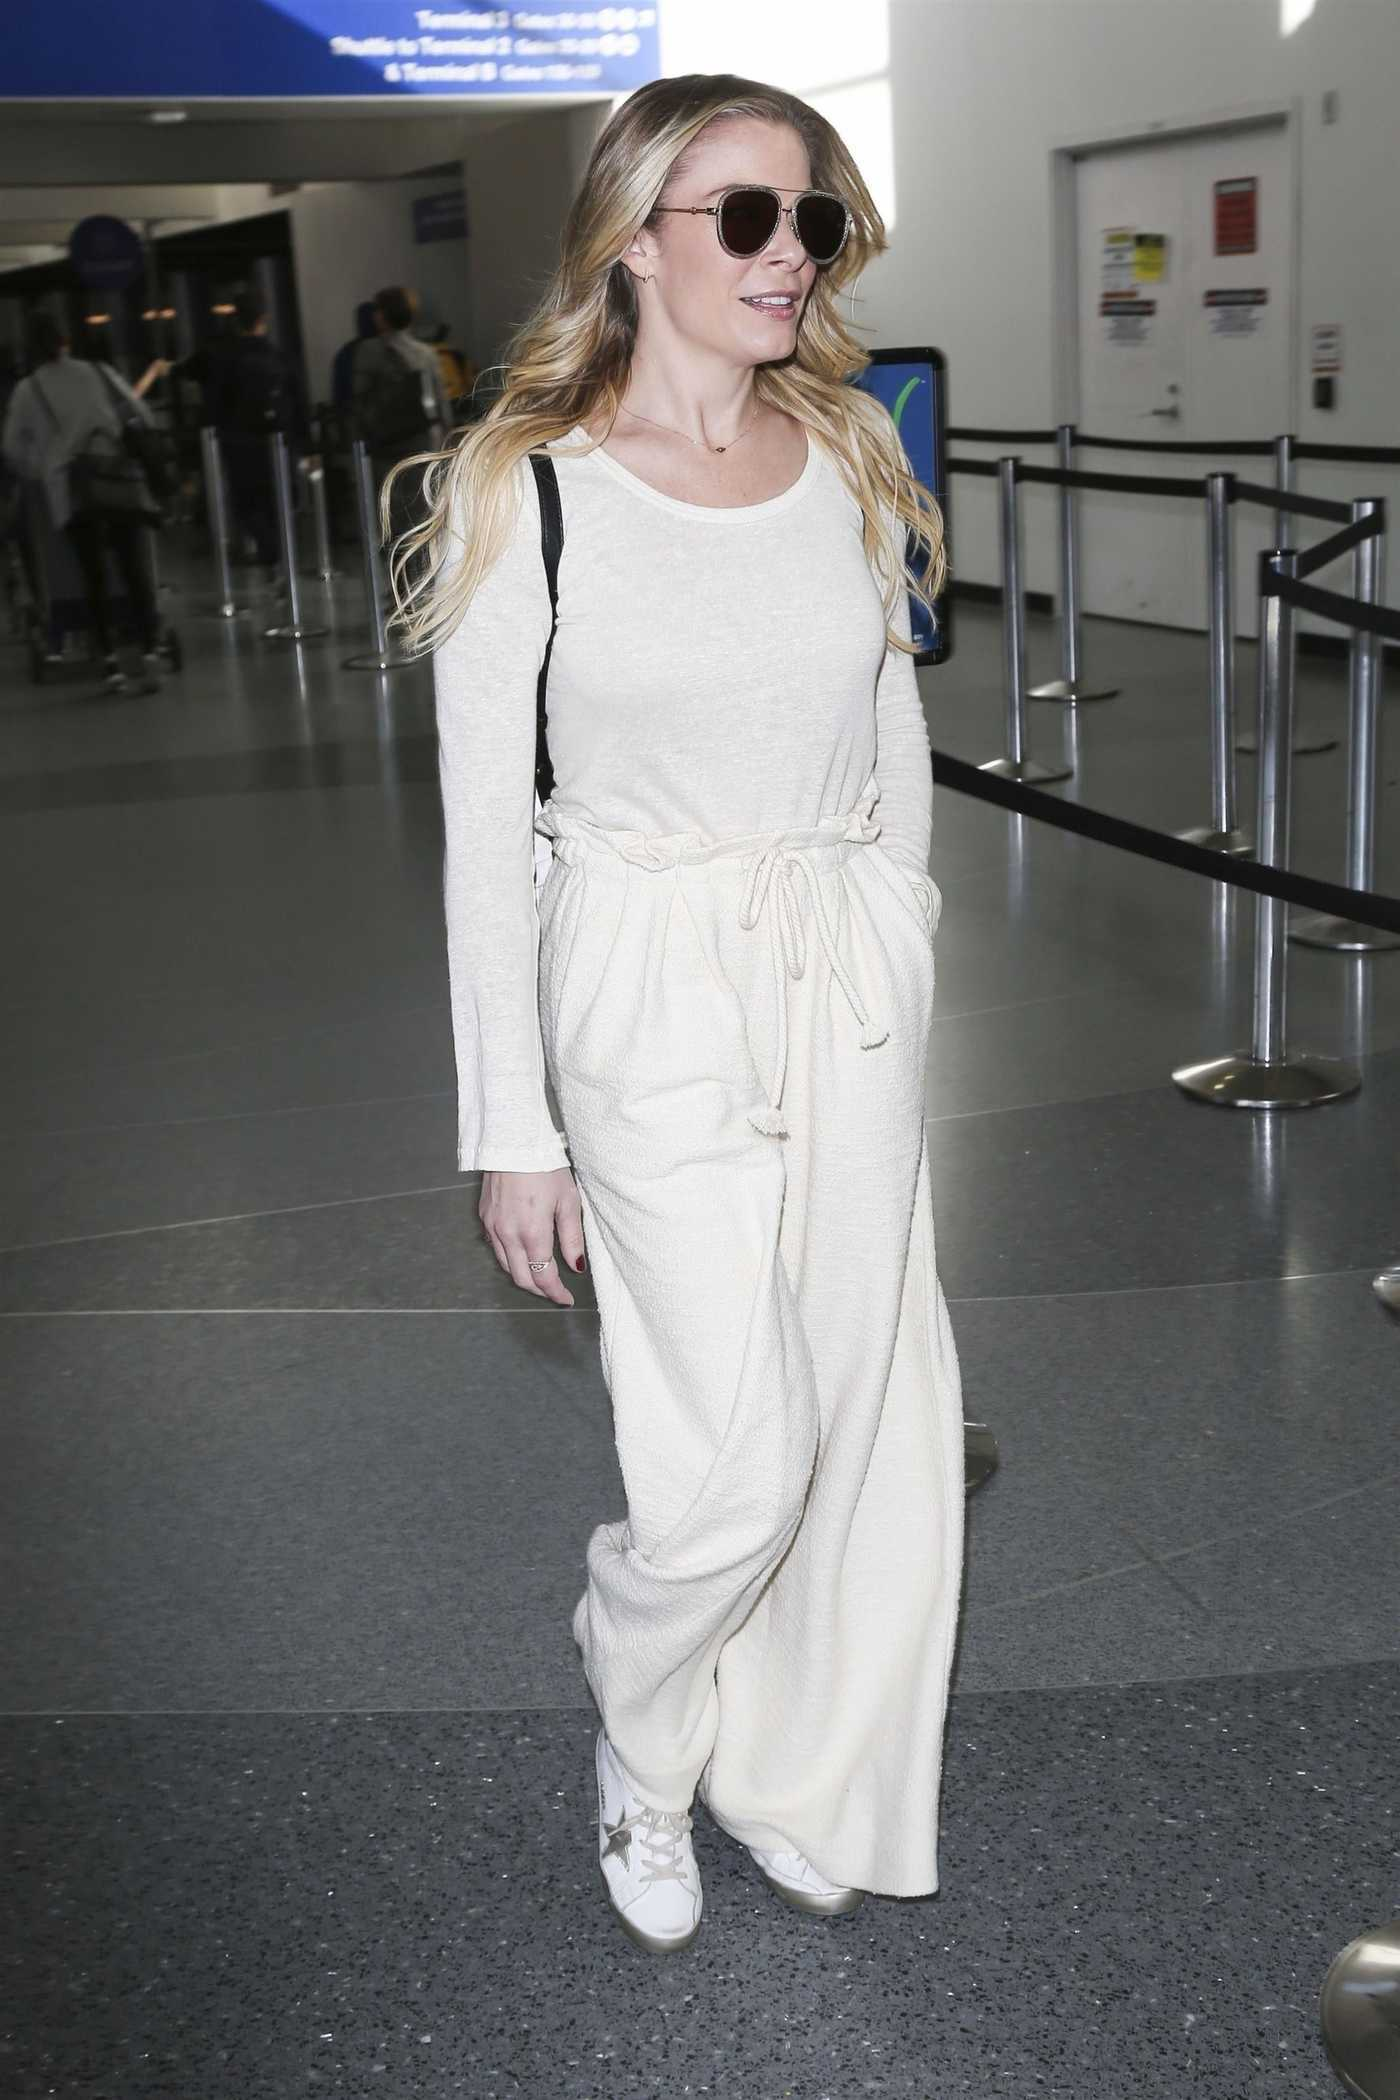 LeAnn Rimes in a White Sweatpants Arrives at LAX Airport in LA 12/26/2018